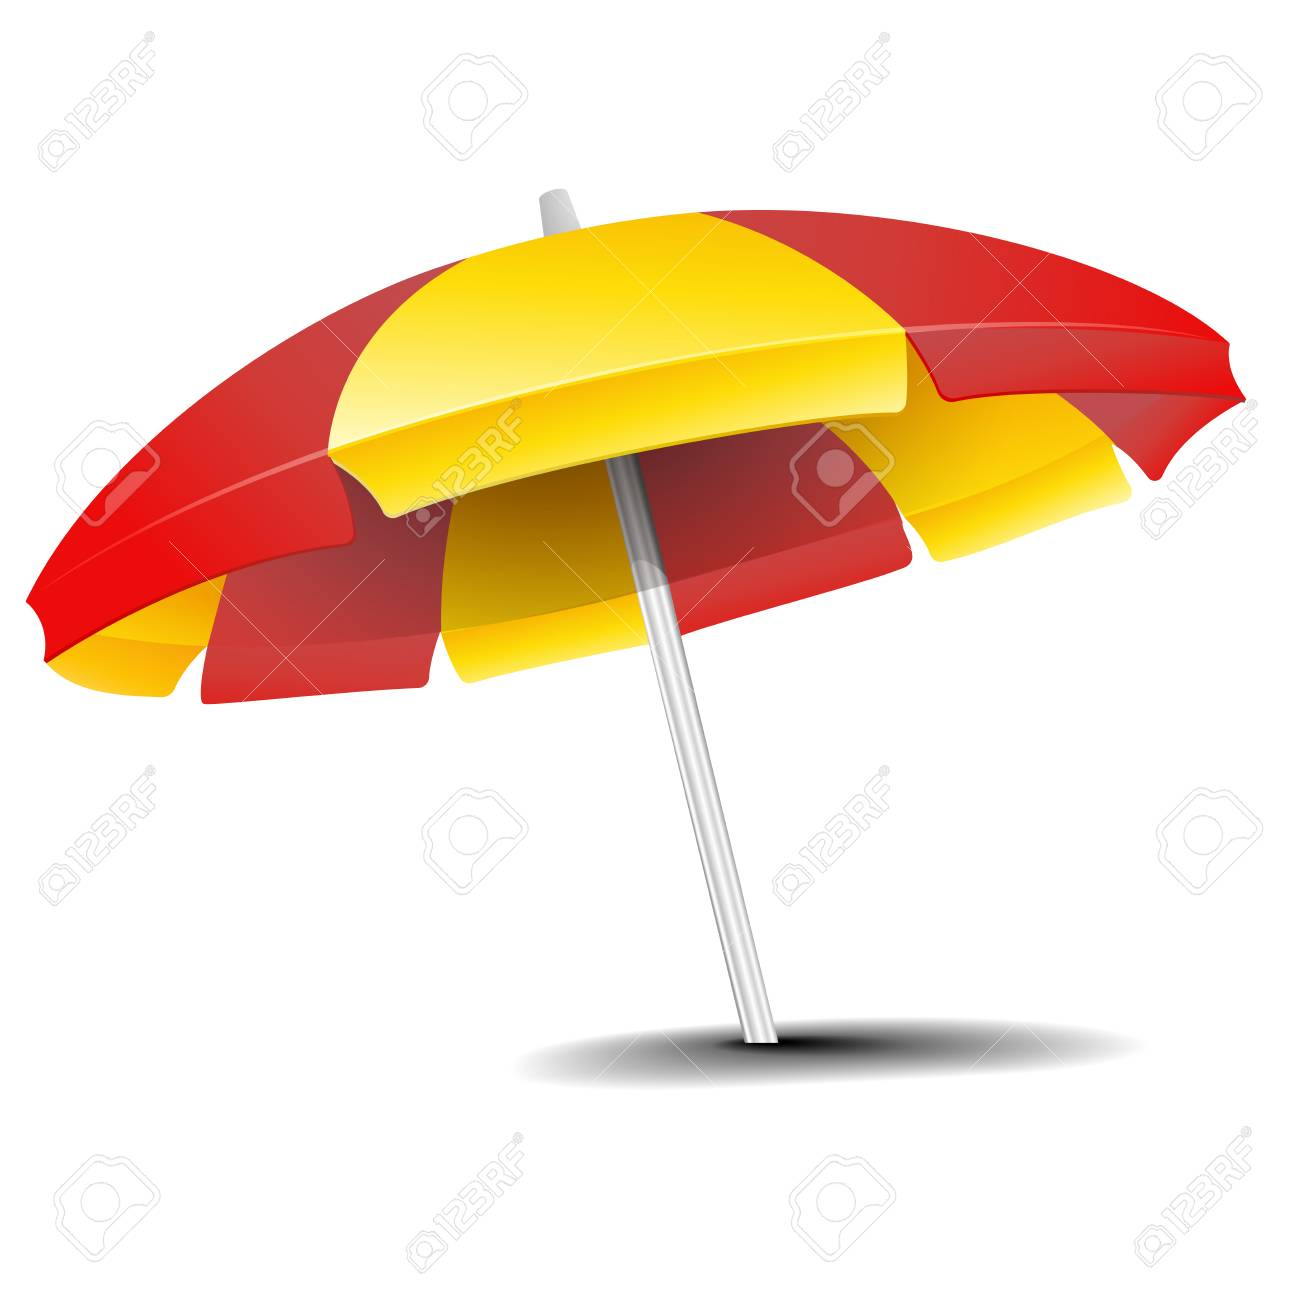 bf6d1d3334 detailed illustration of a beach umbrella isolated on white